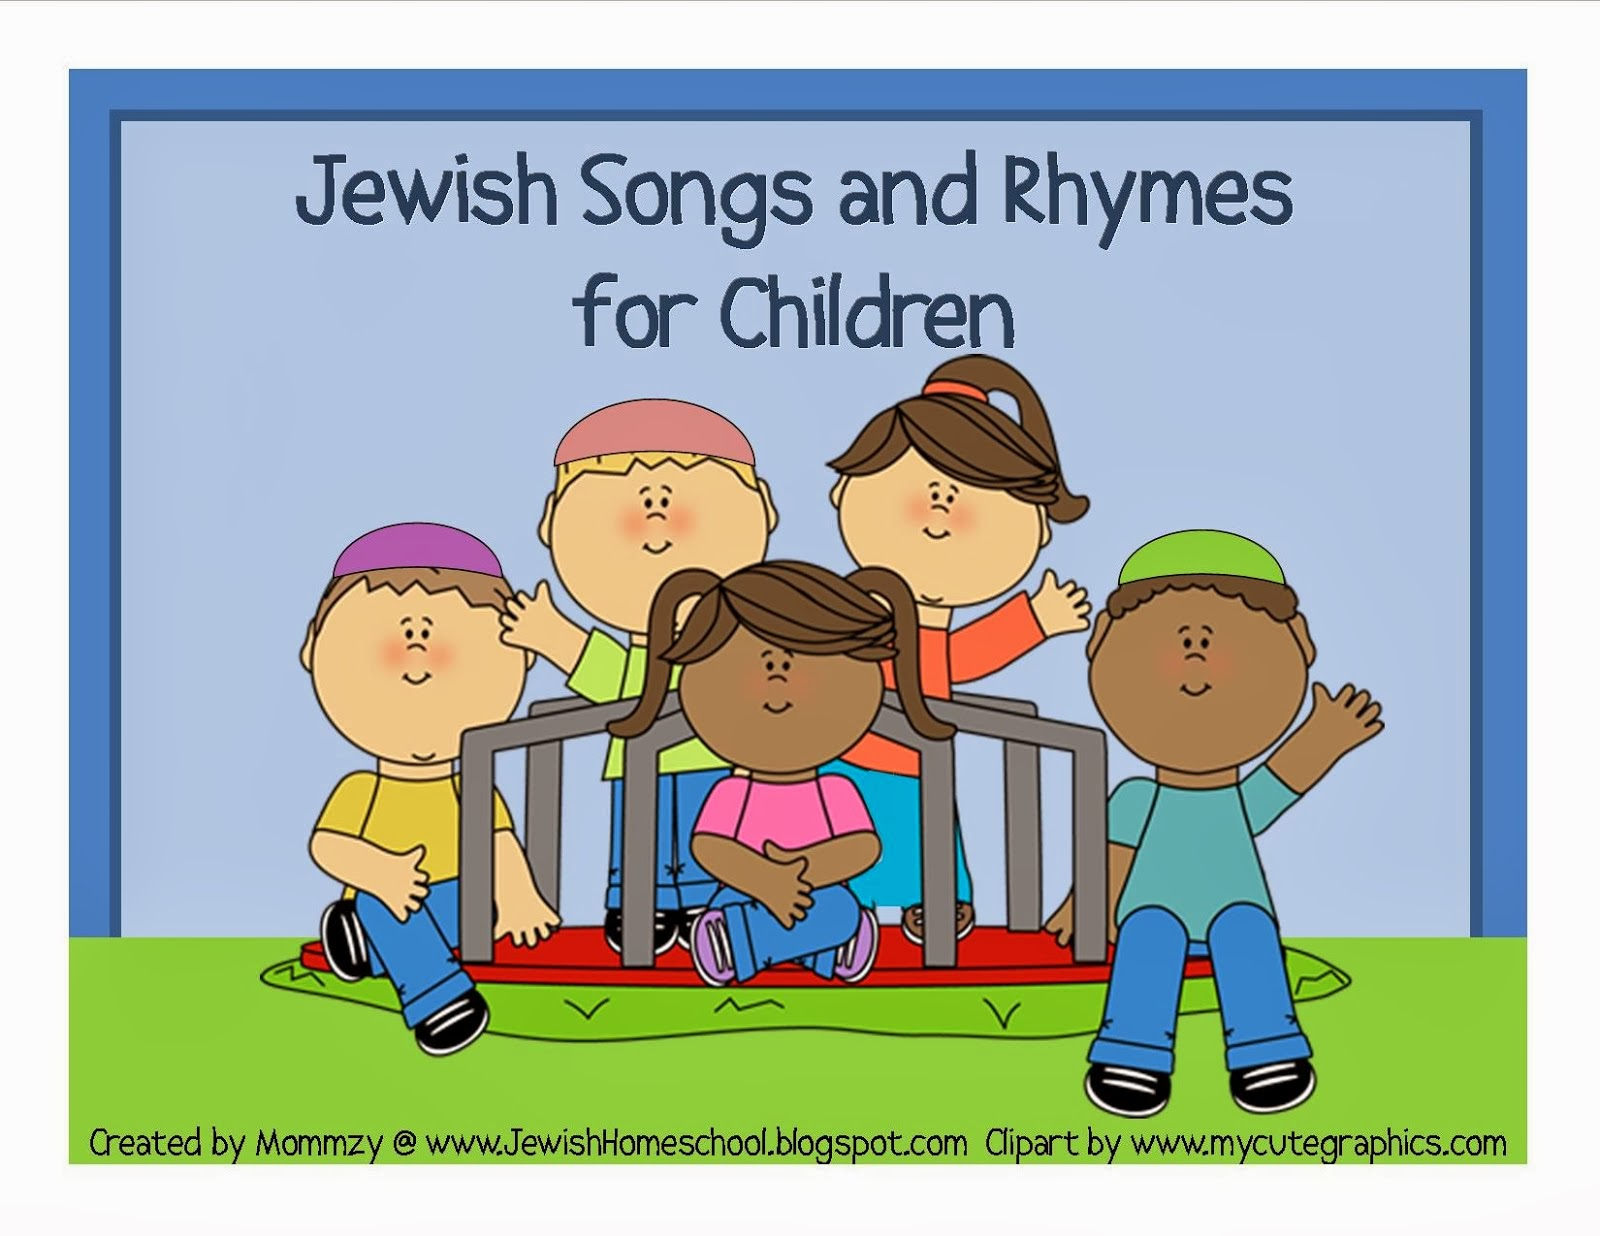 A Jewish Homeschool Blog Adorable Lulav And Etrog Cookies And Sukkah Craft